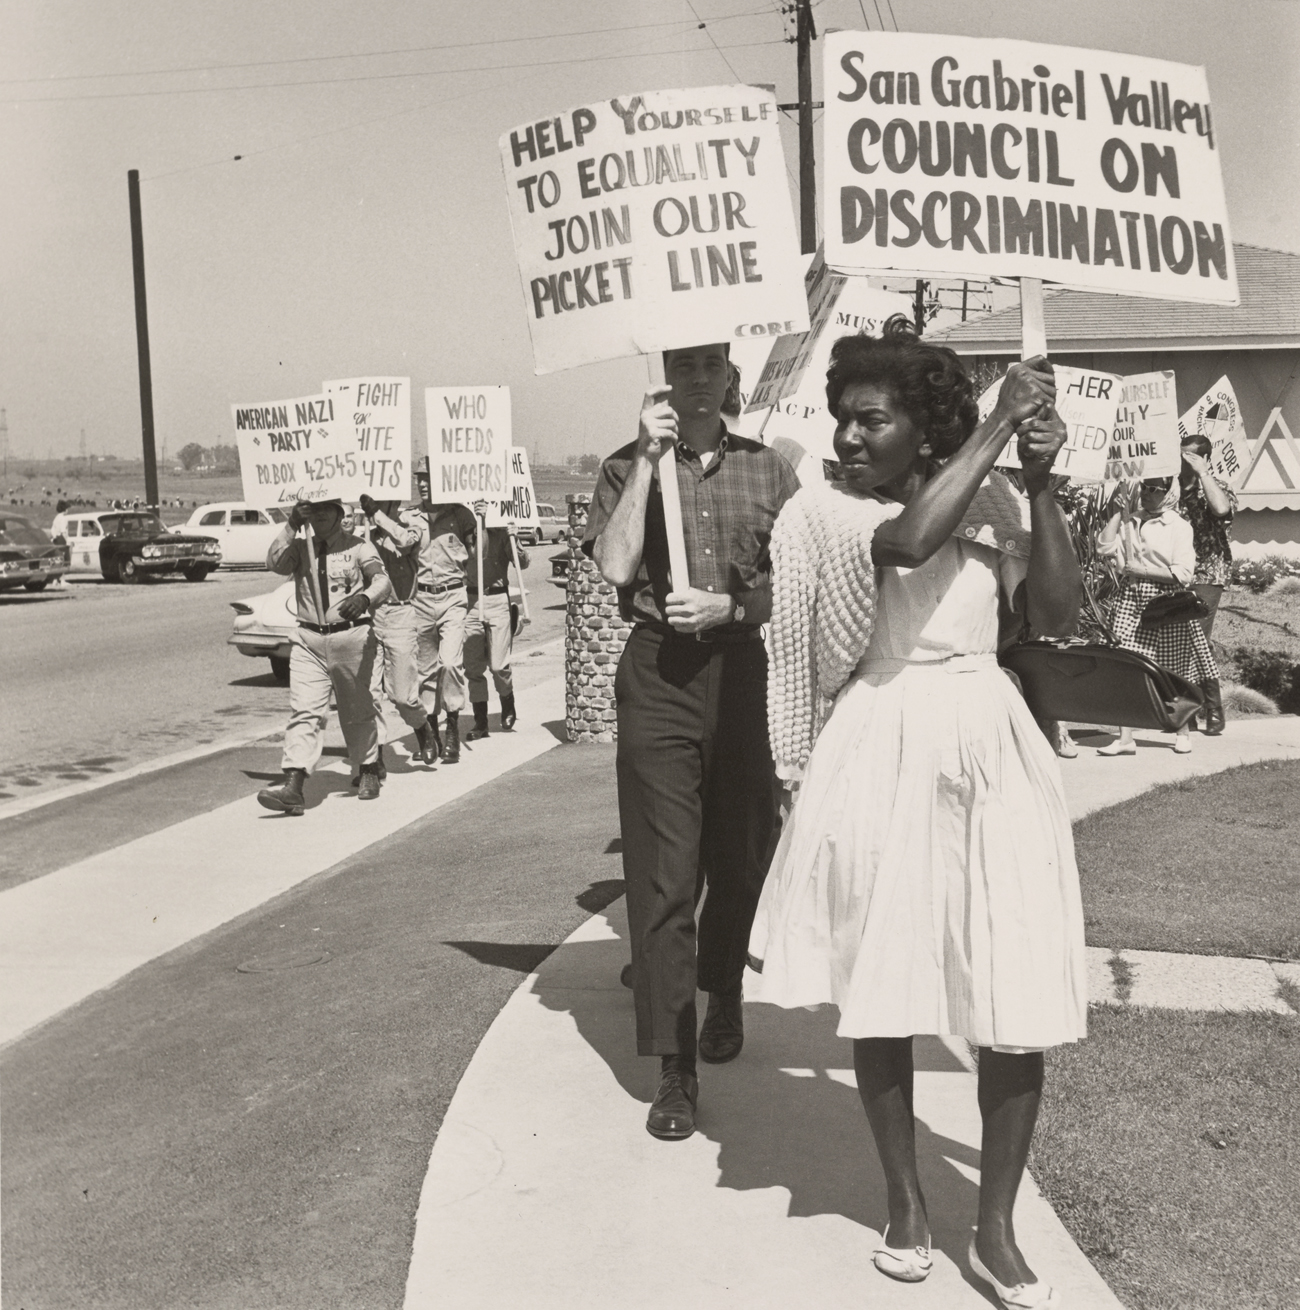 An Activist S View Of The Civil Rights Movement